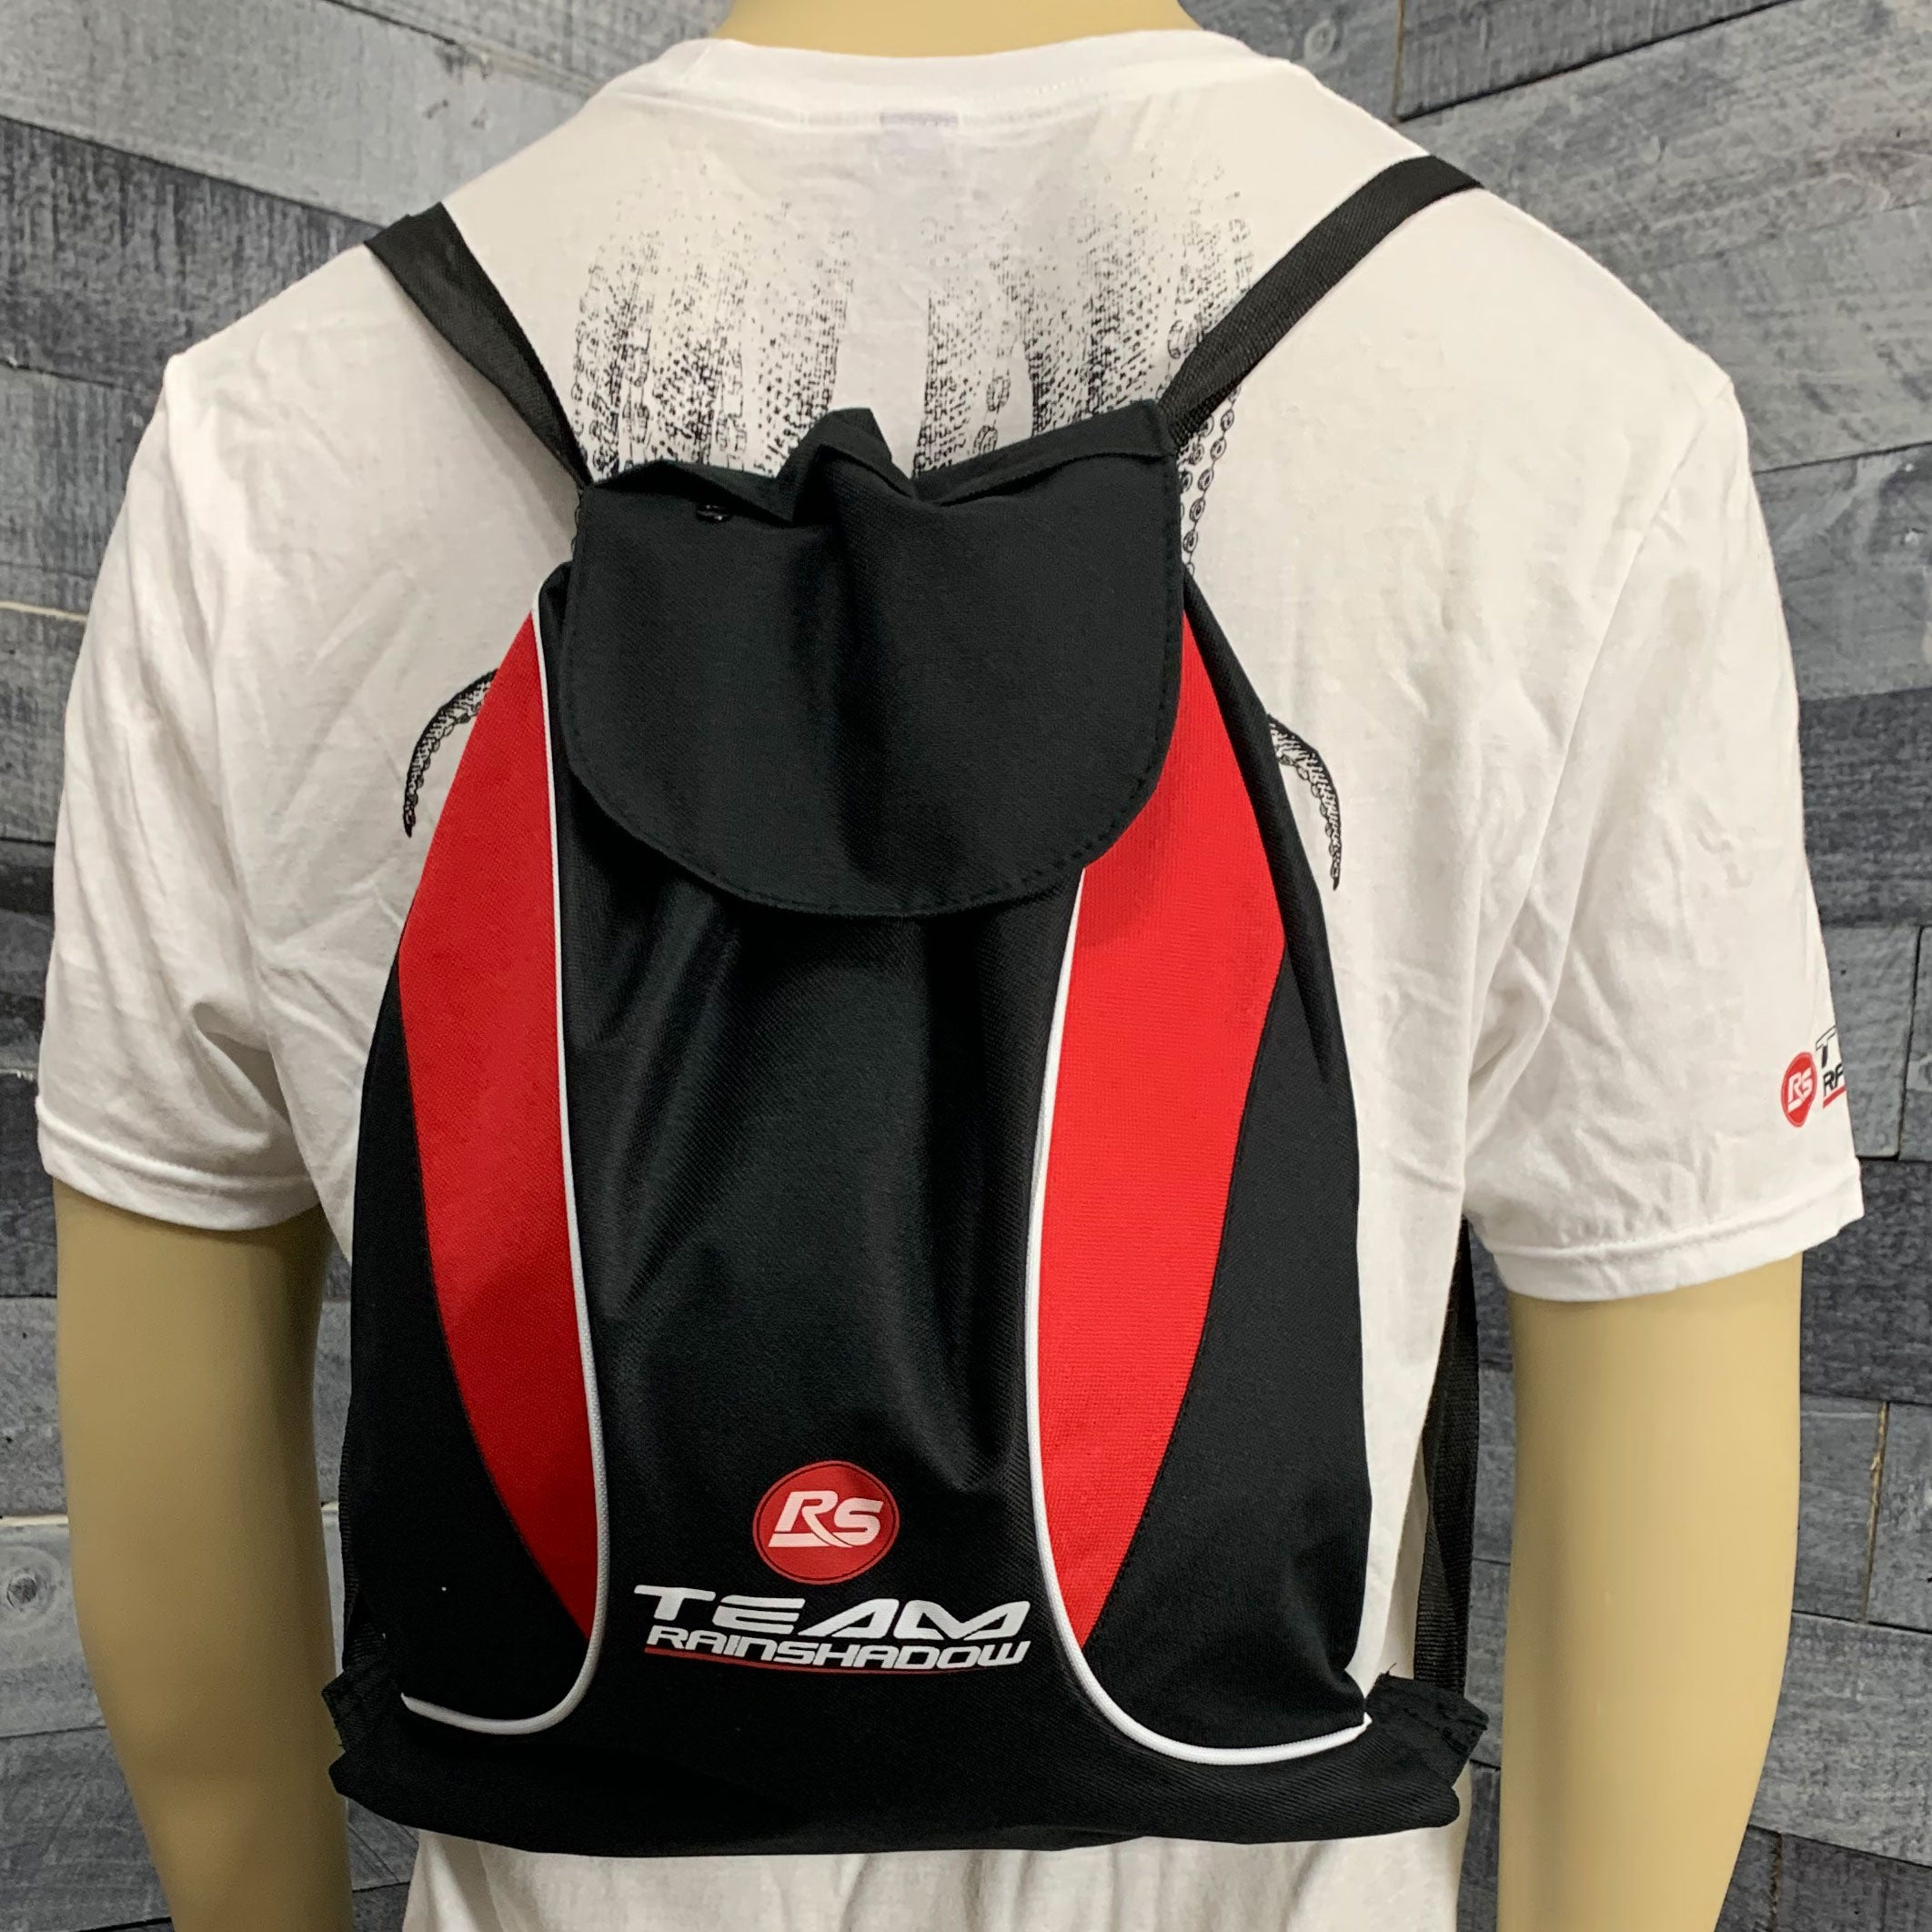 Team RainShadow Cinch Sport Pack Drawstring Bag